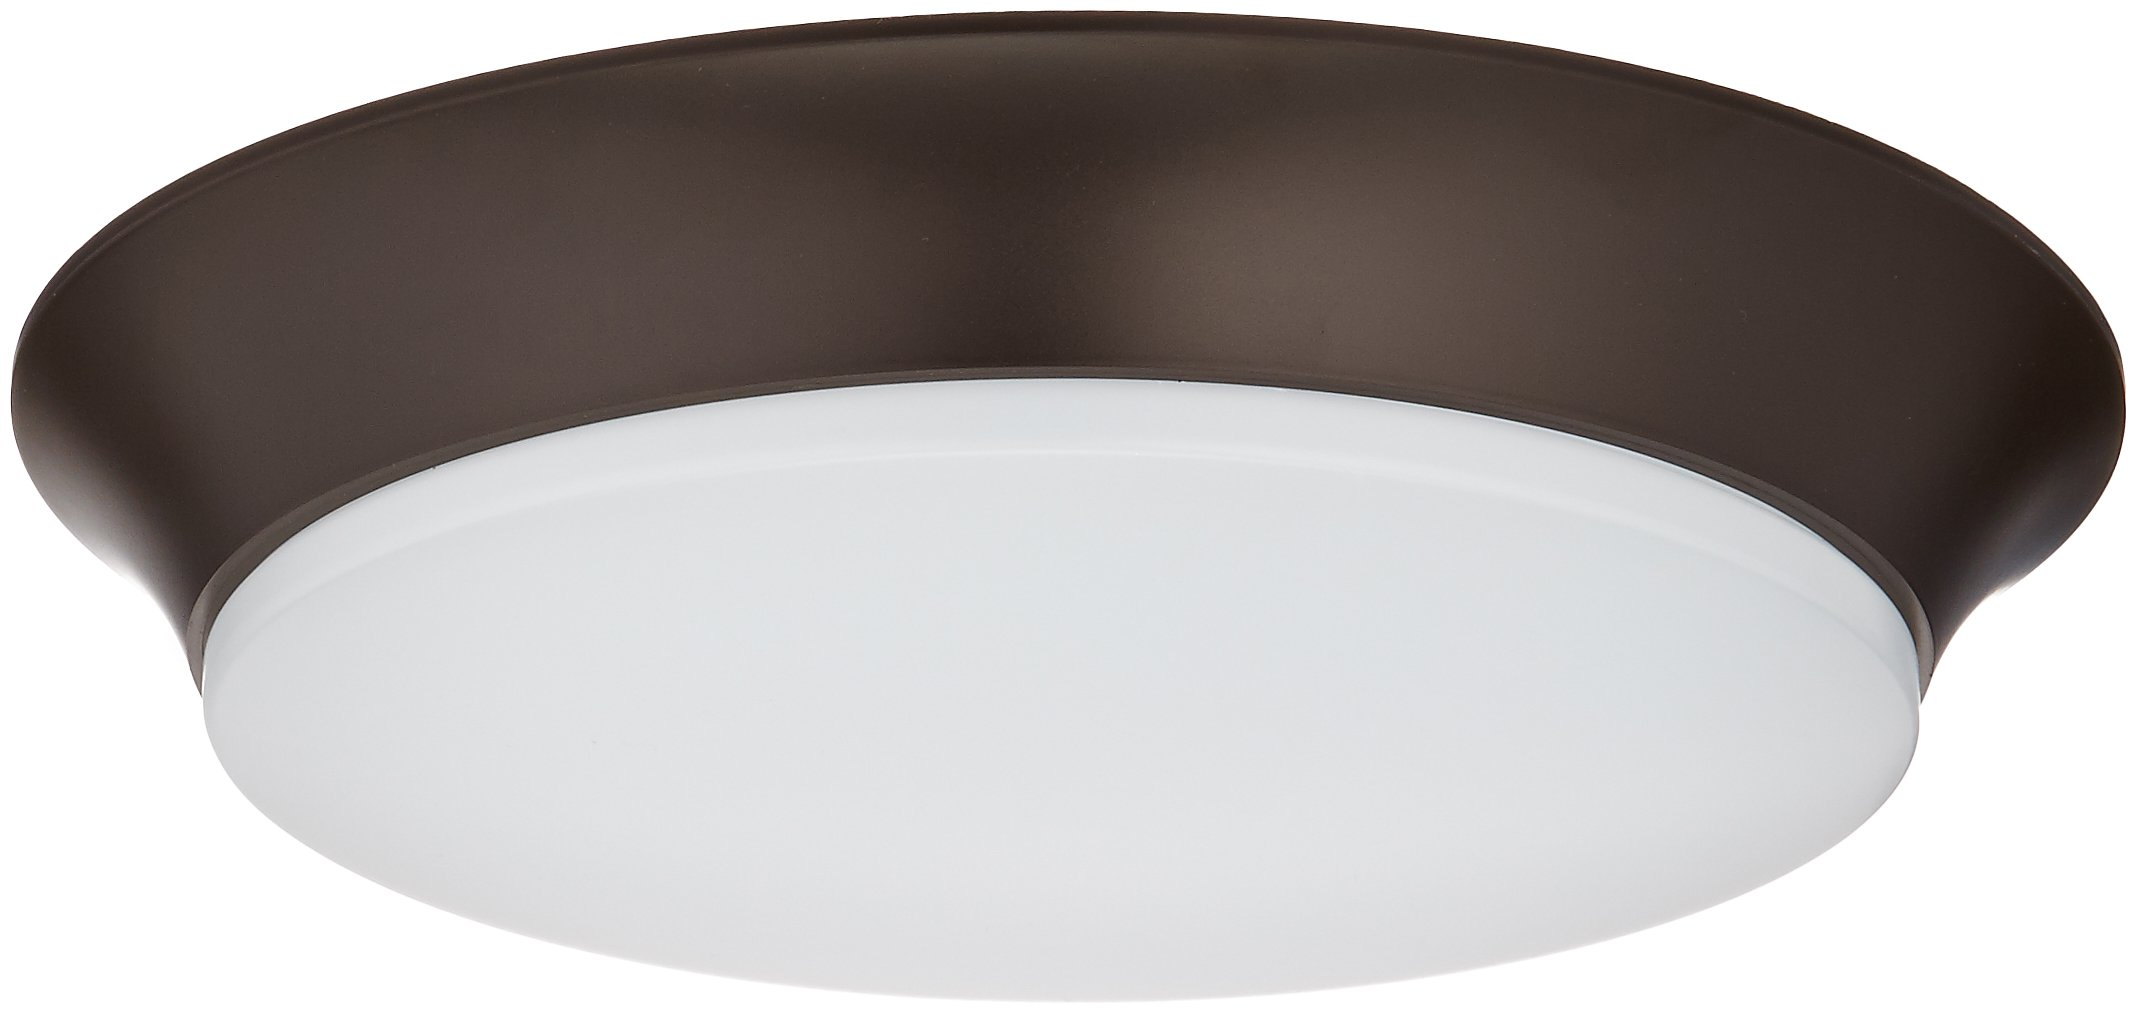 Maxim 87590WTBZ Profile EE LED Flush Mount, Bronze Finish, White Glass, LED Bulb , 60W Max., Dry Safety Rating, Standard Dimmable, Glass Shade Material, 2016 Rated Lumens